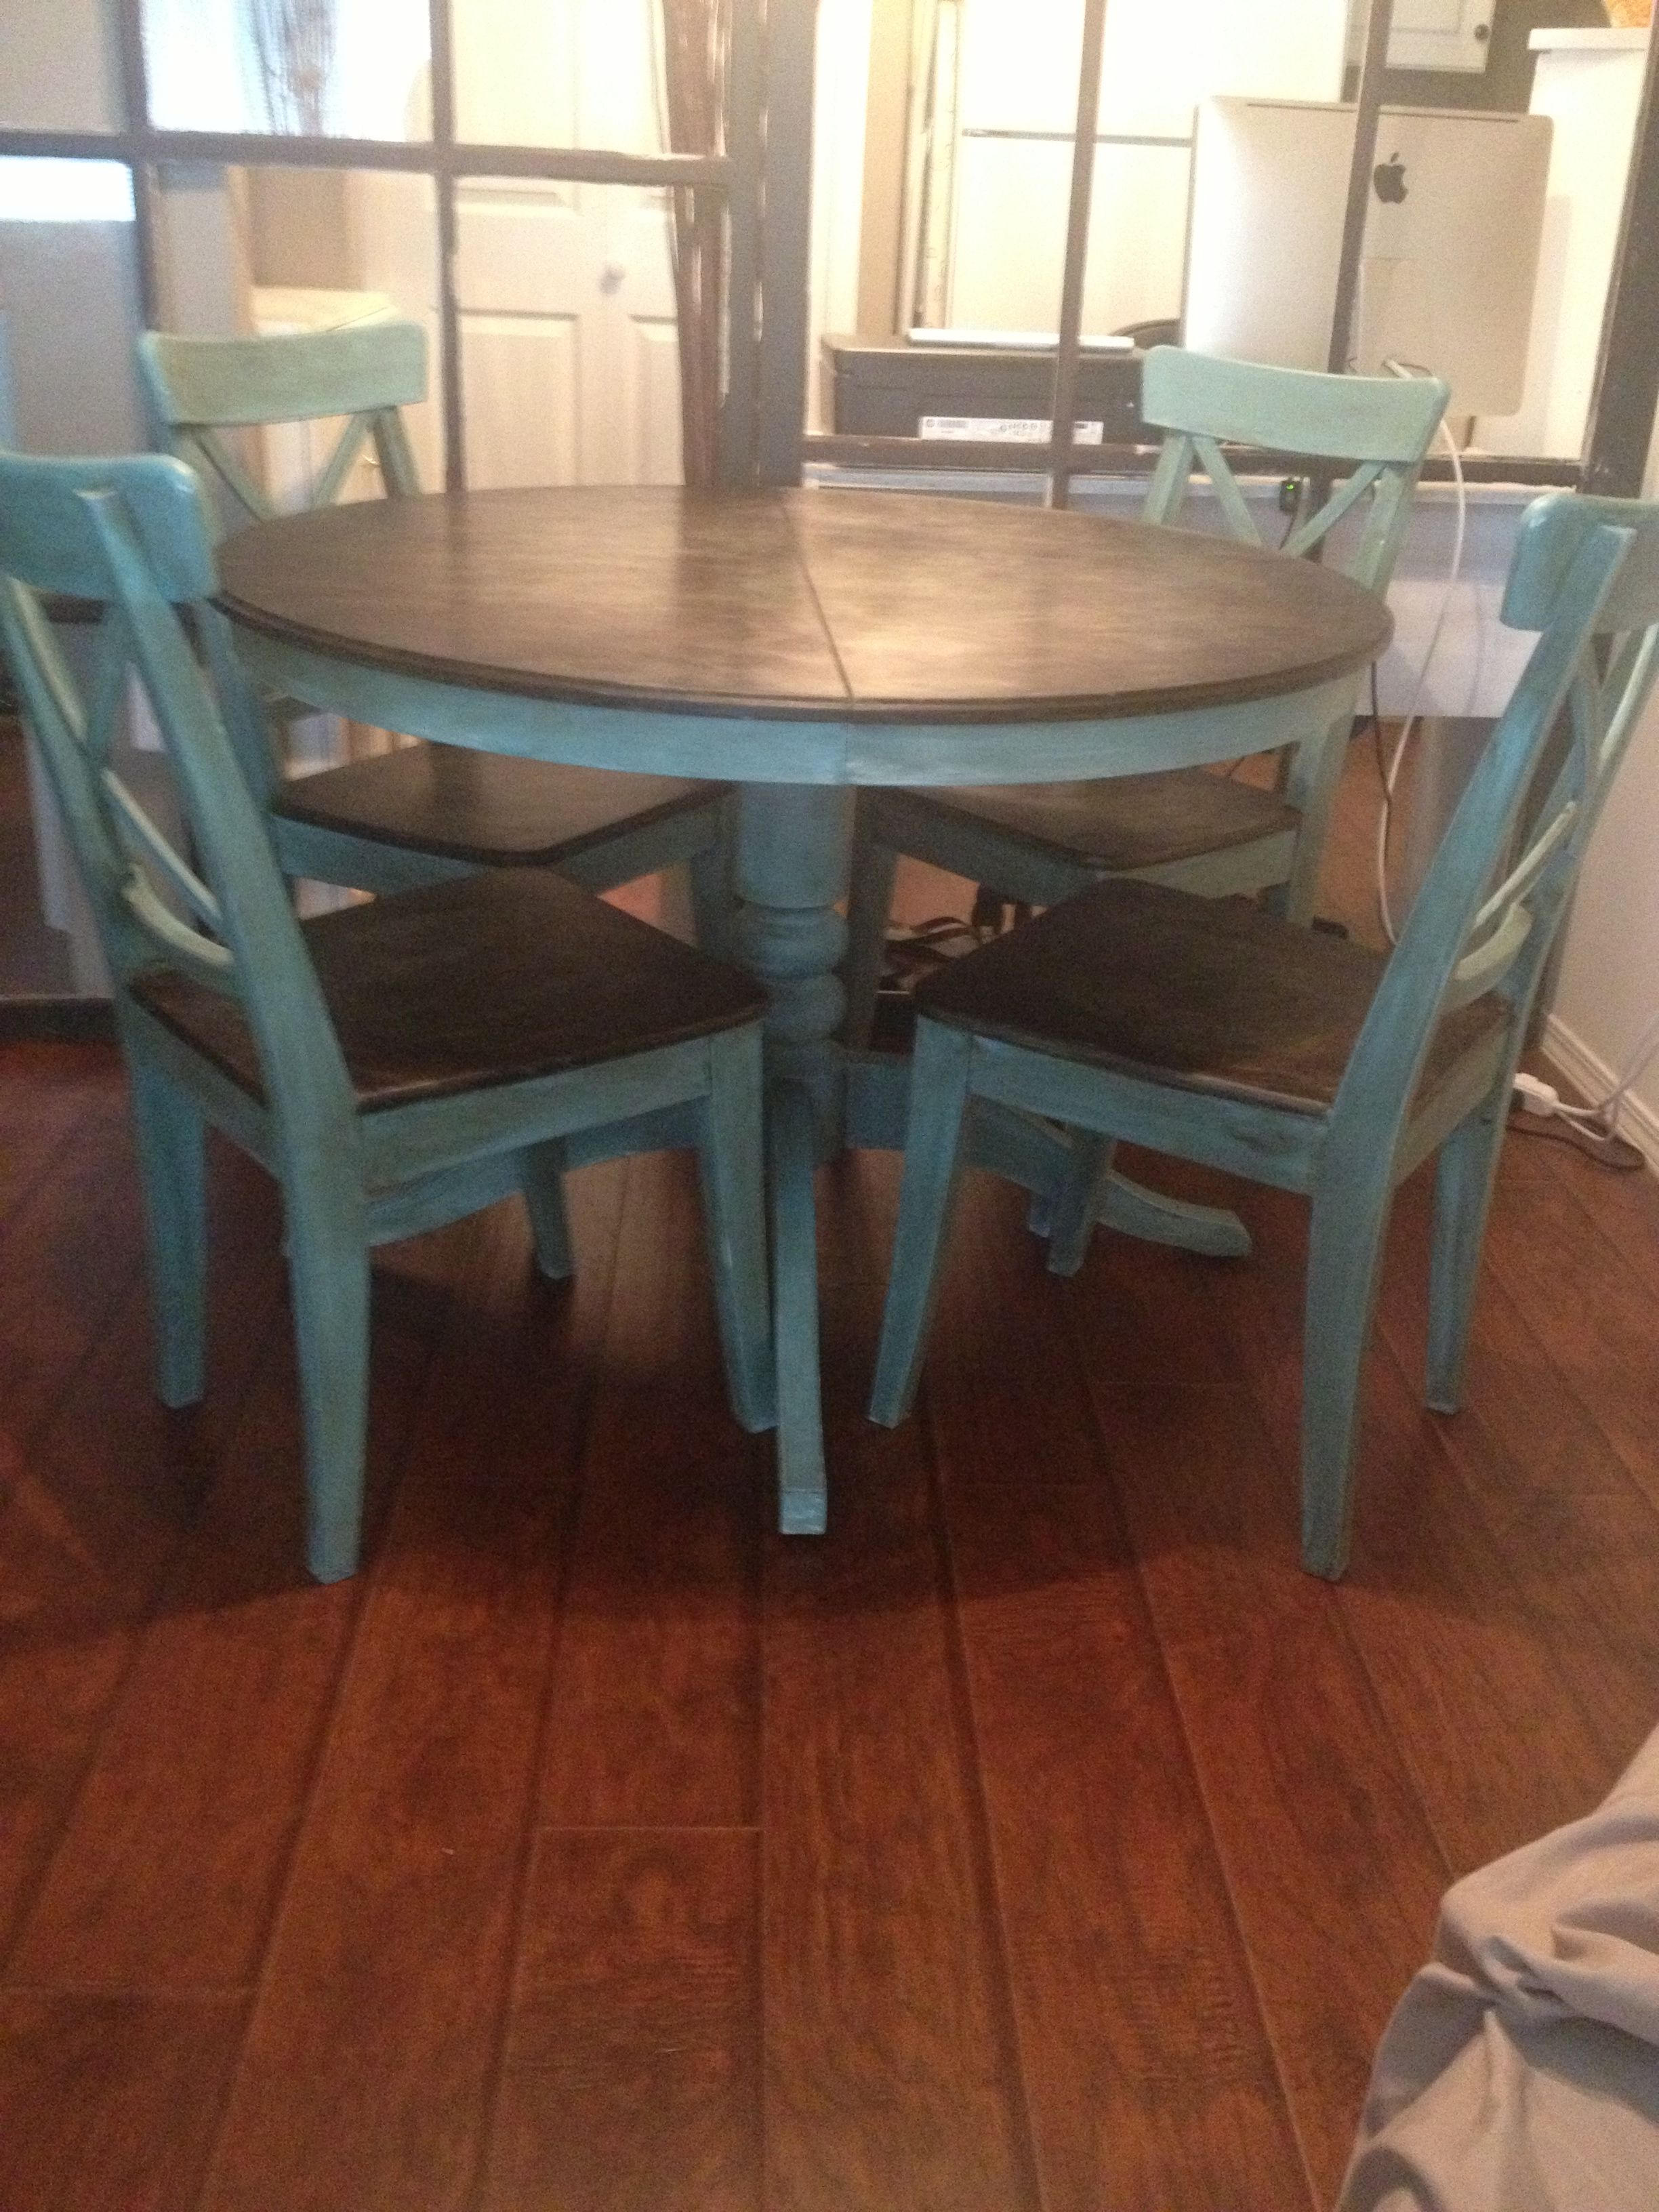 Pin By Sherrie York On Mine Painted Kitchen Tables Painted Dining Table Diy Kitchen Table